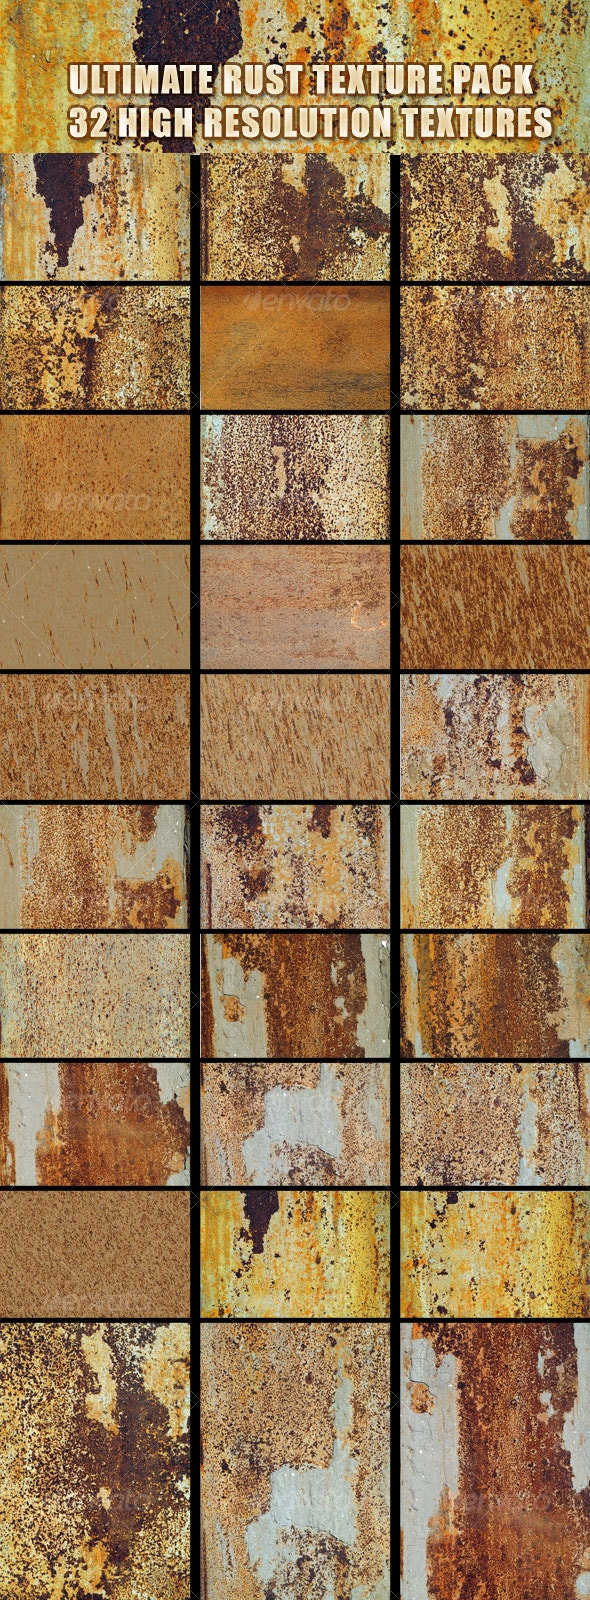 ULTIMATE RUST TEXTURE PACK  - Industrial / Grunge Textures